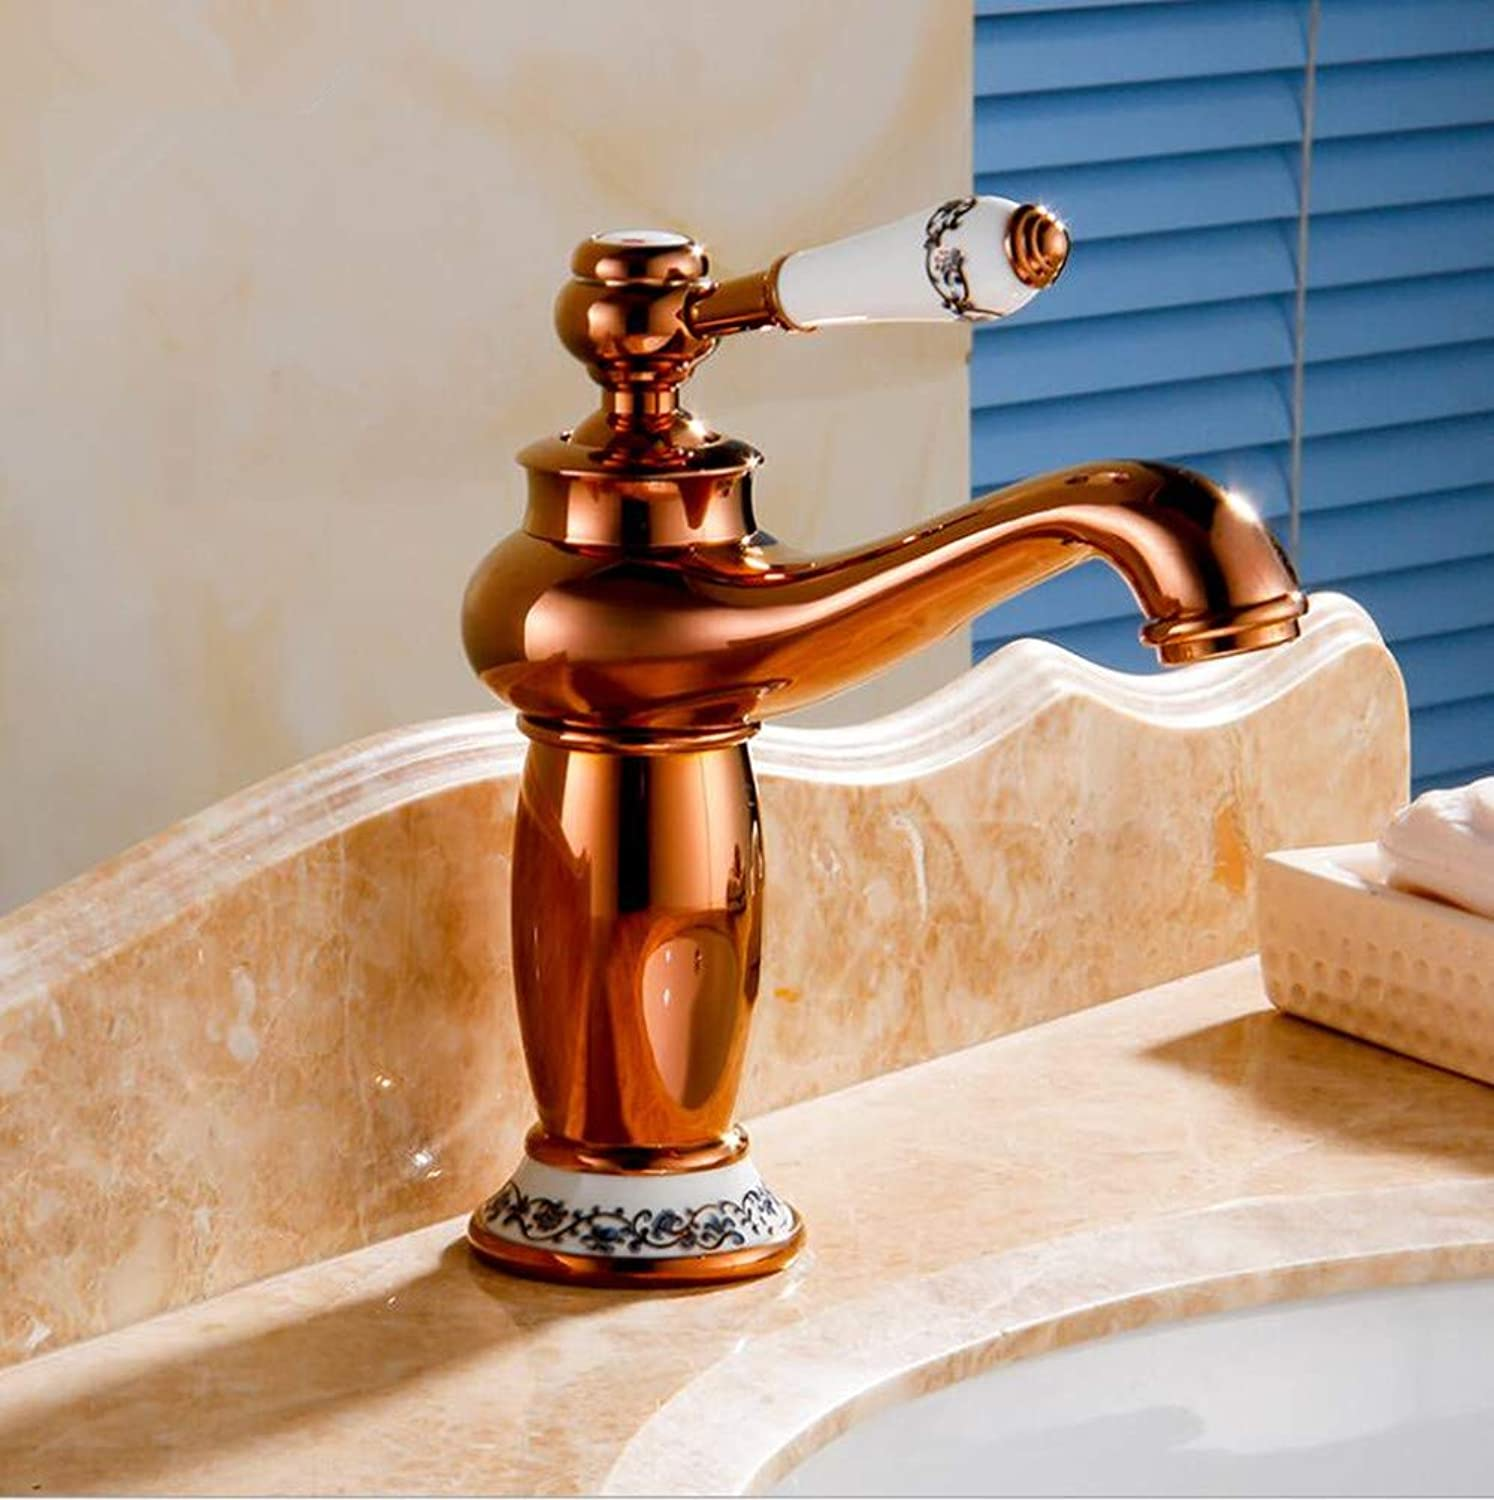 Ss European-style gold-plated Faucet In The Bathroom Antique Copper-plated Hot And Cold Faucet In The Basin,Metallic